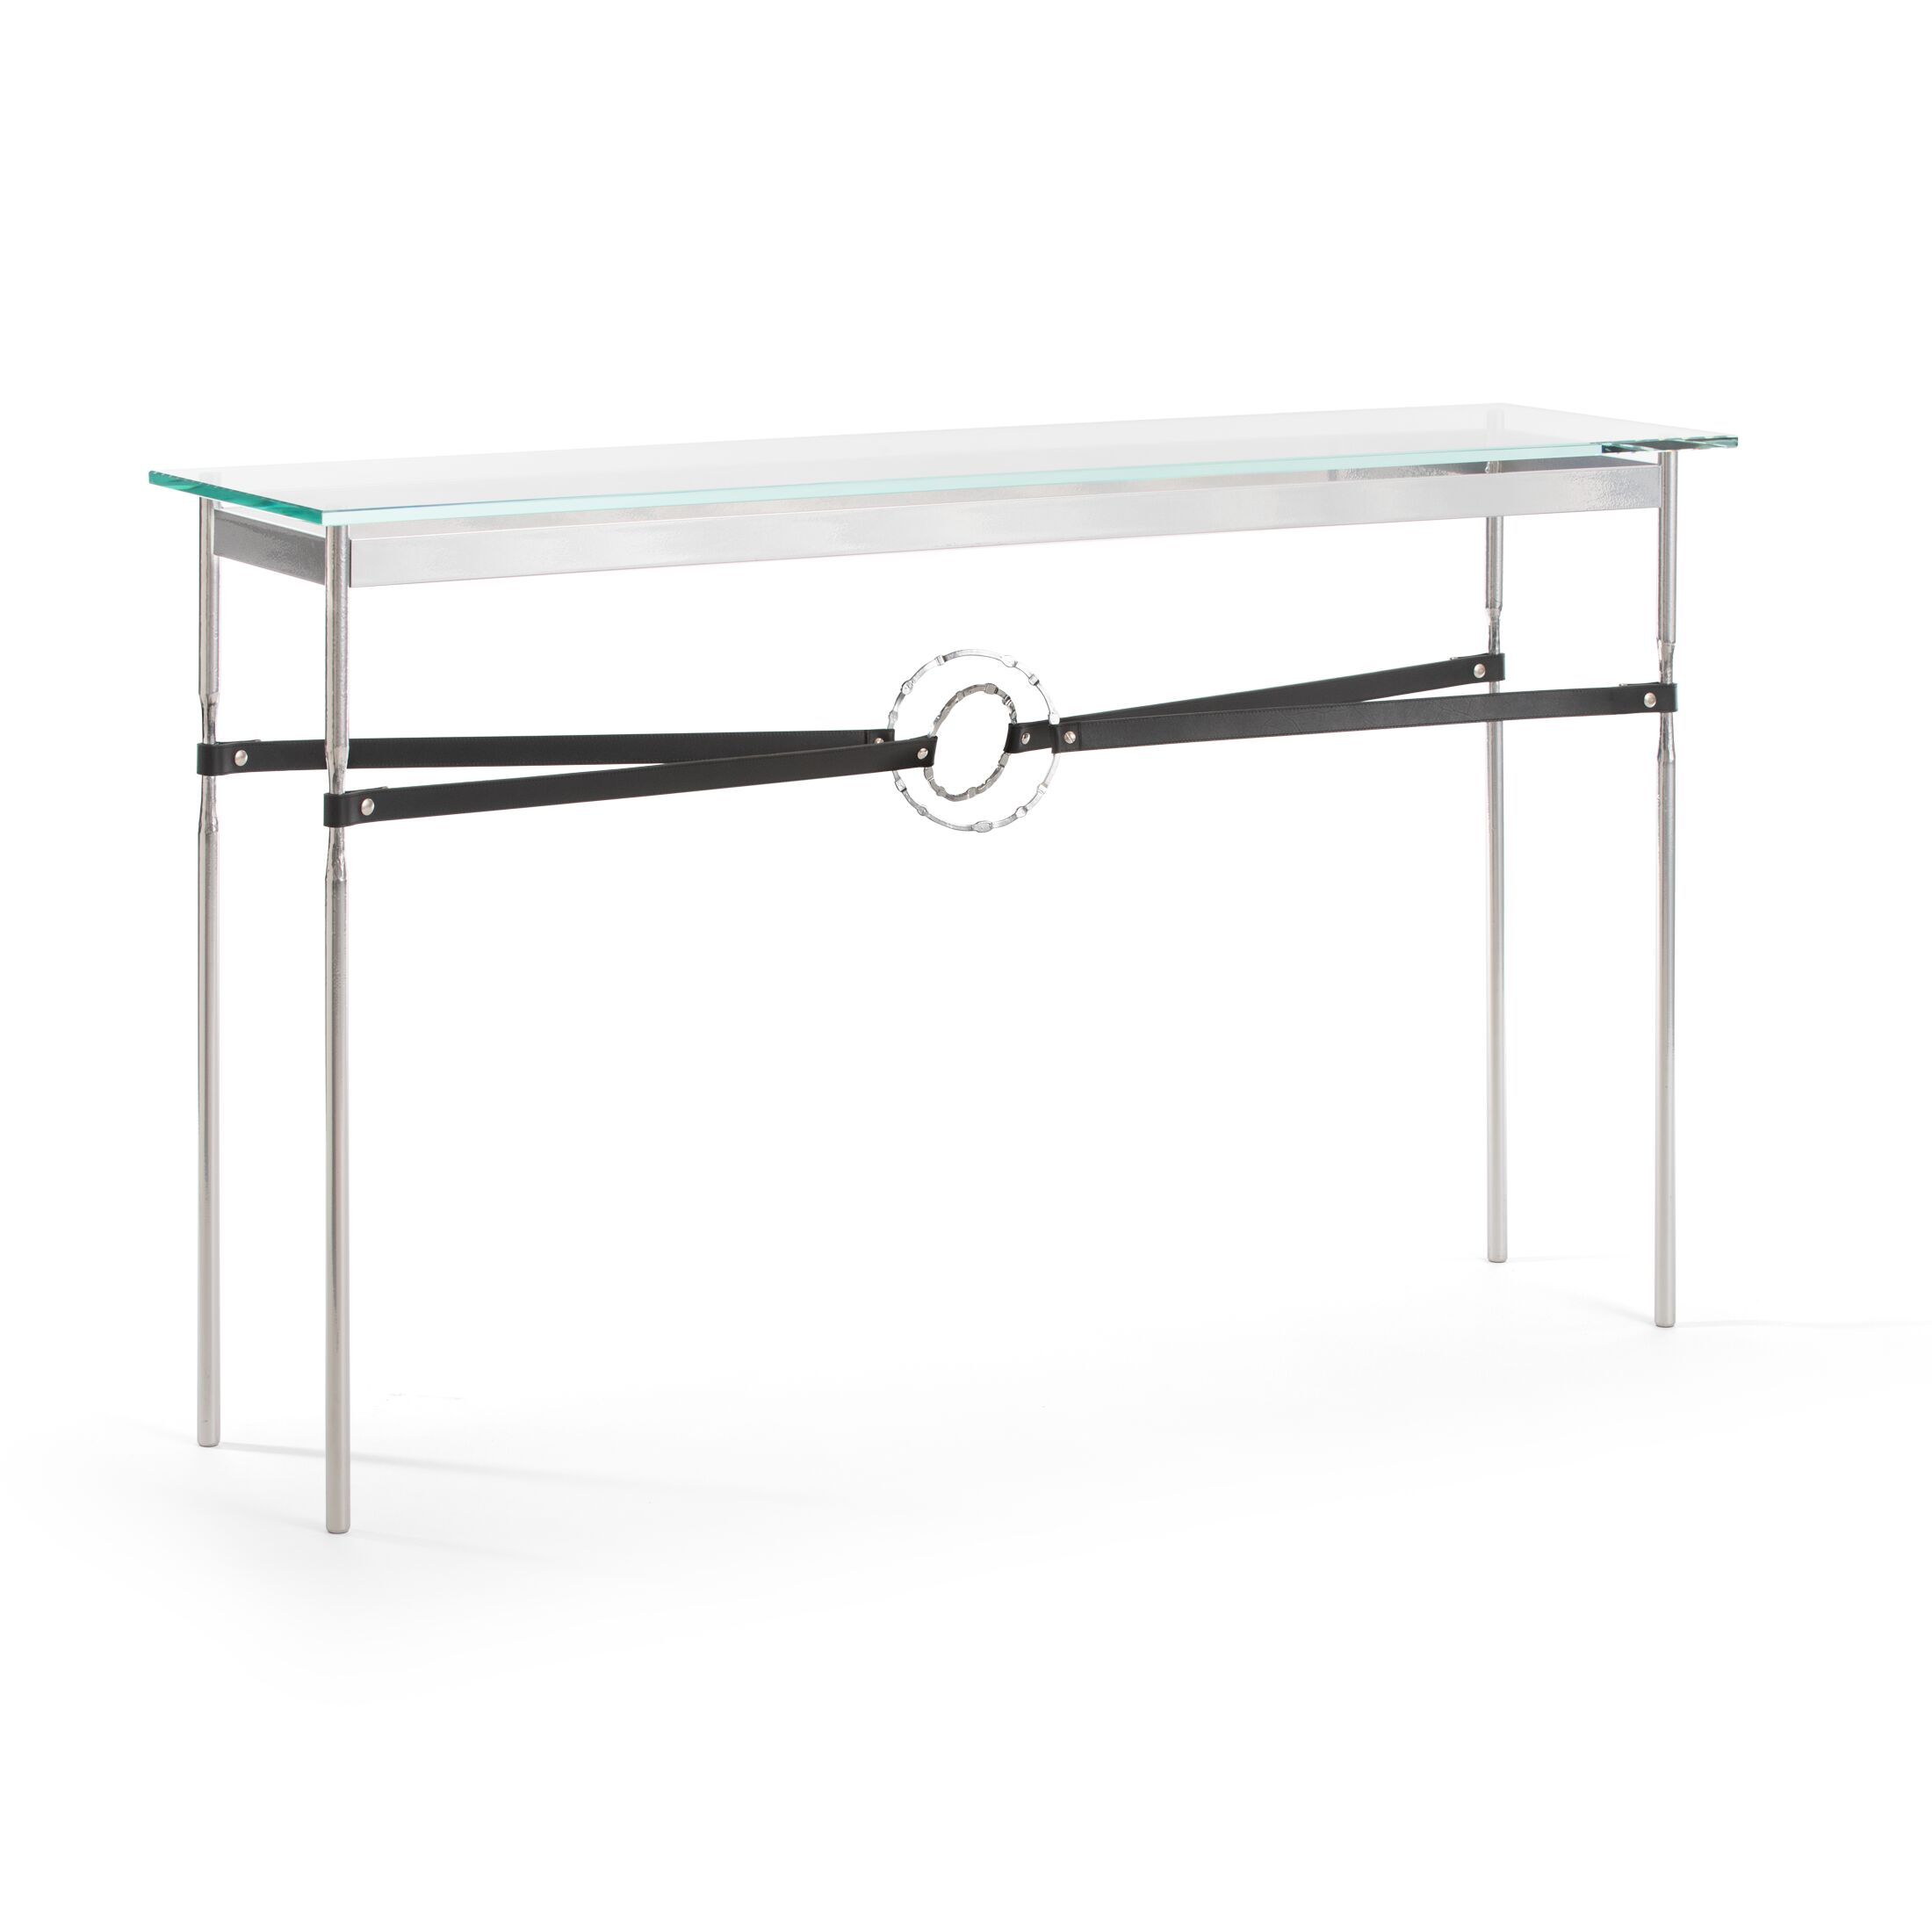 Thumbnail for Equus Console Table